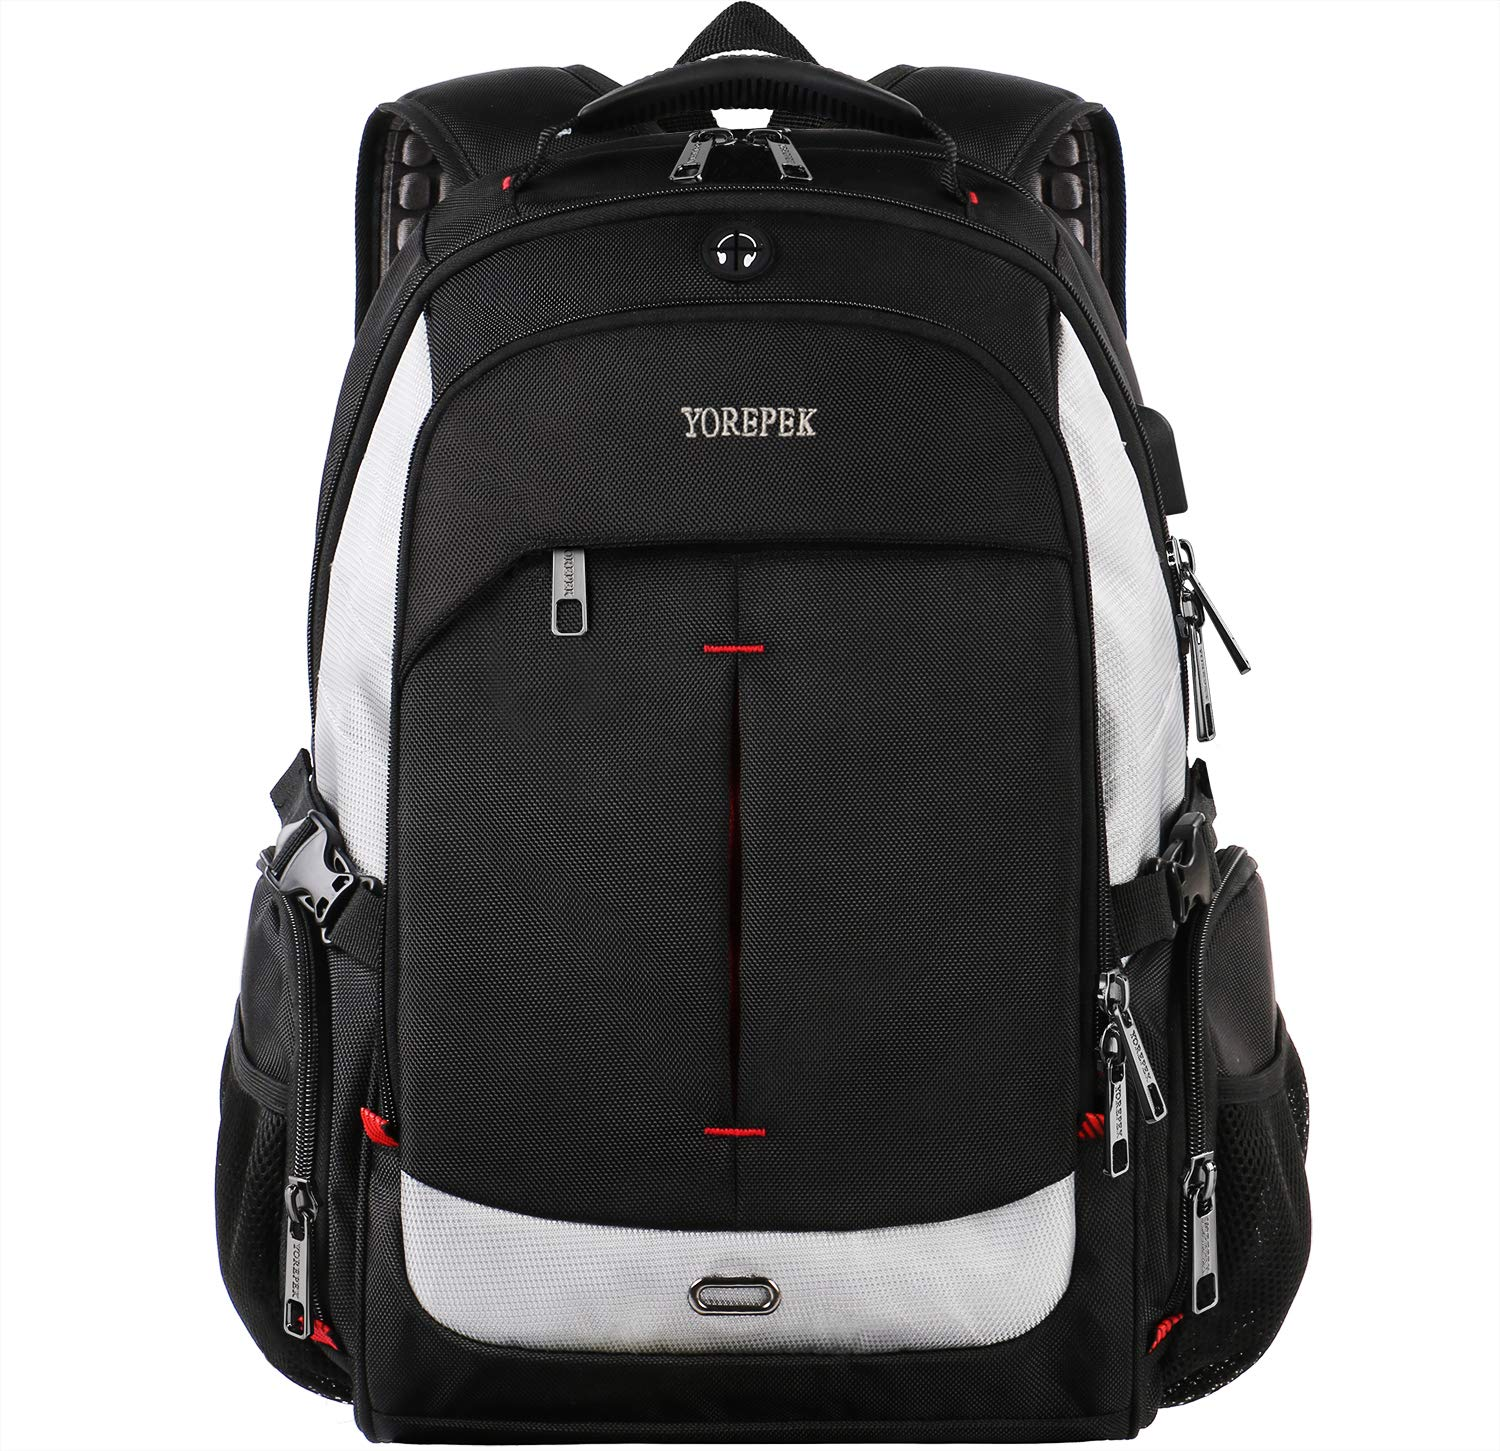 Travel Laptop Backpack,17 Inch Laptops Backpack with USB Charging Port for Mens Women,Extra Large TSA Friendly Business Computer Bag, Water Resistant Large School Back Pack for College Students,Black